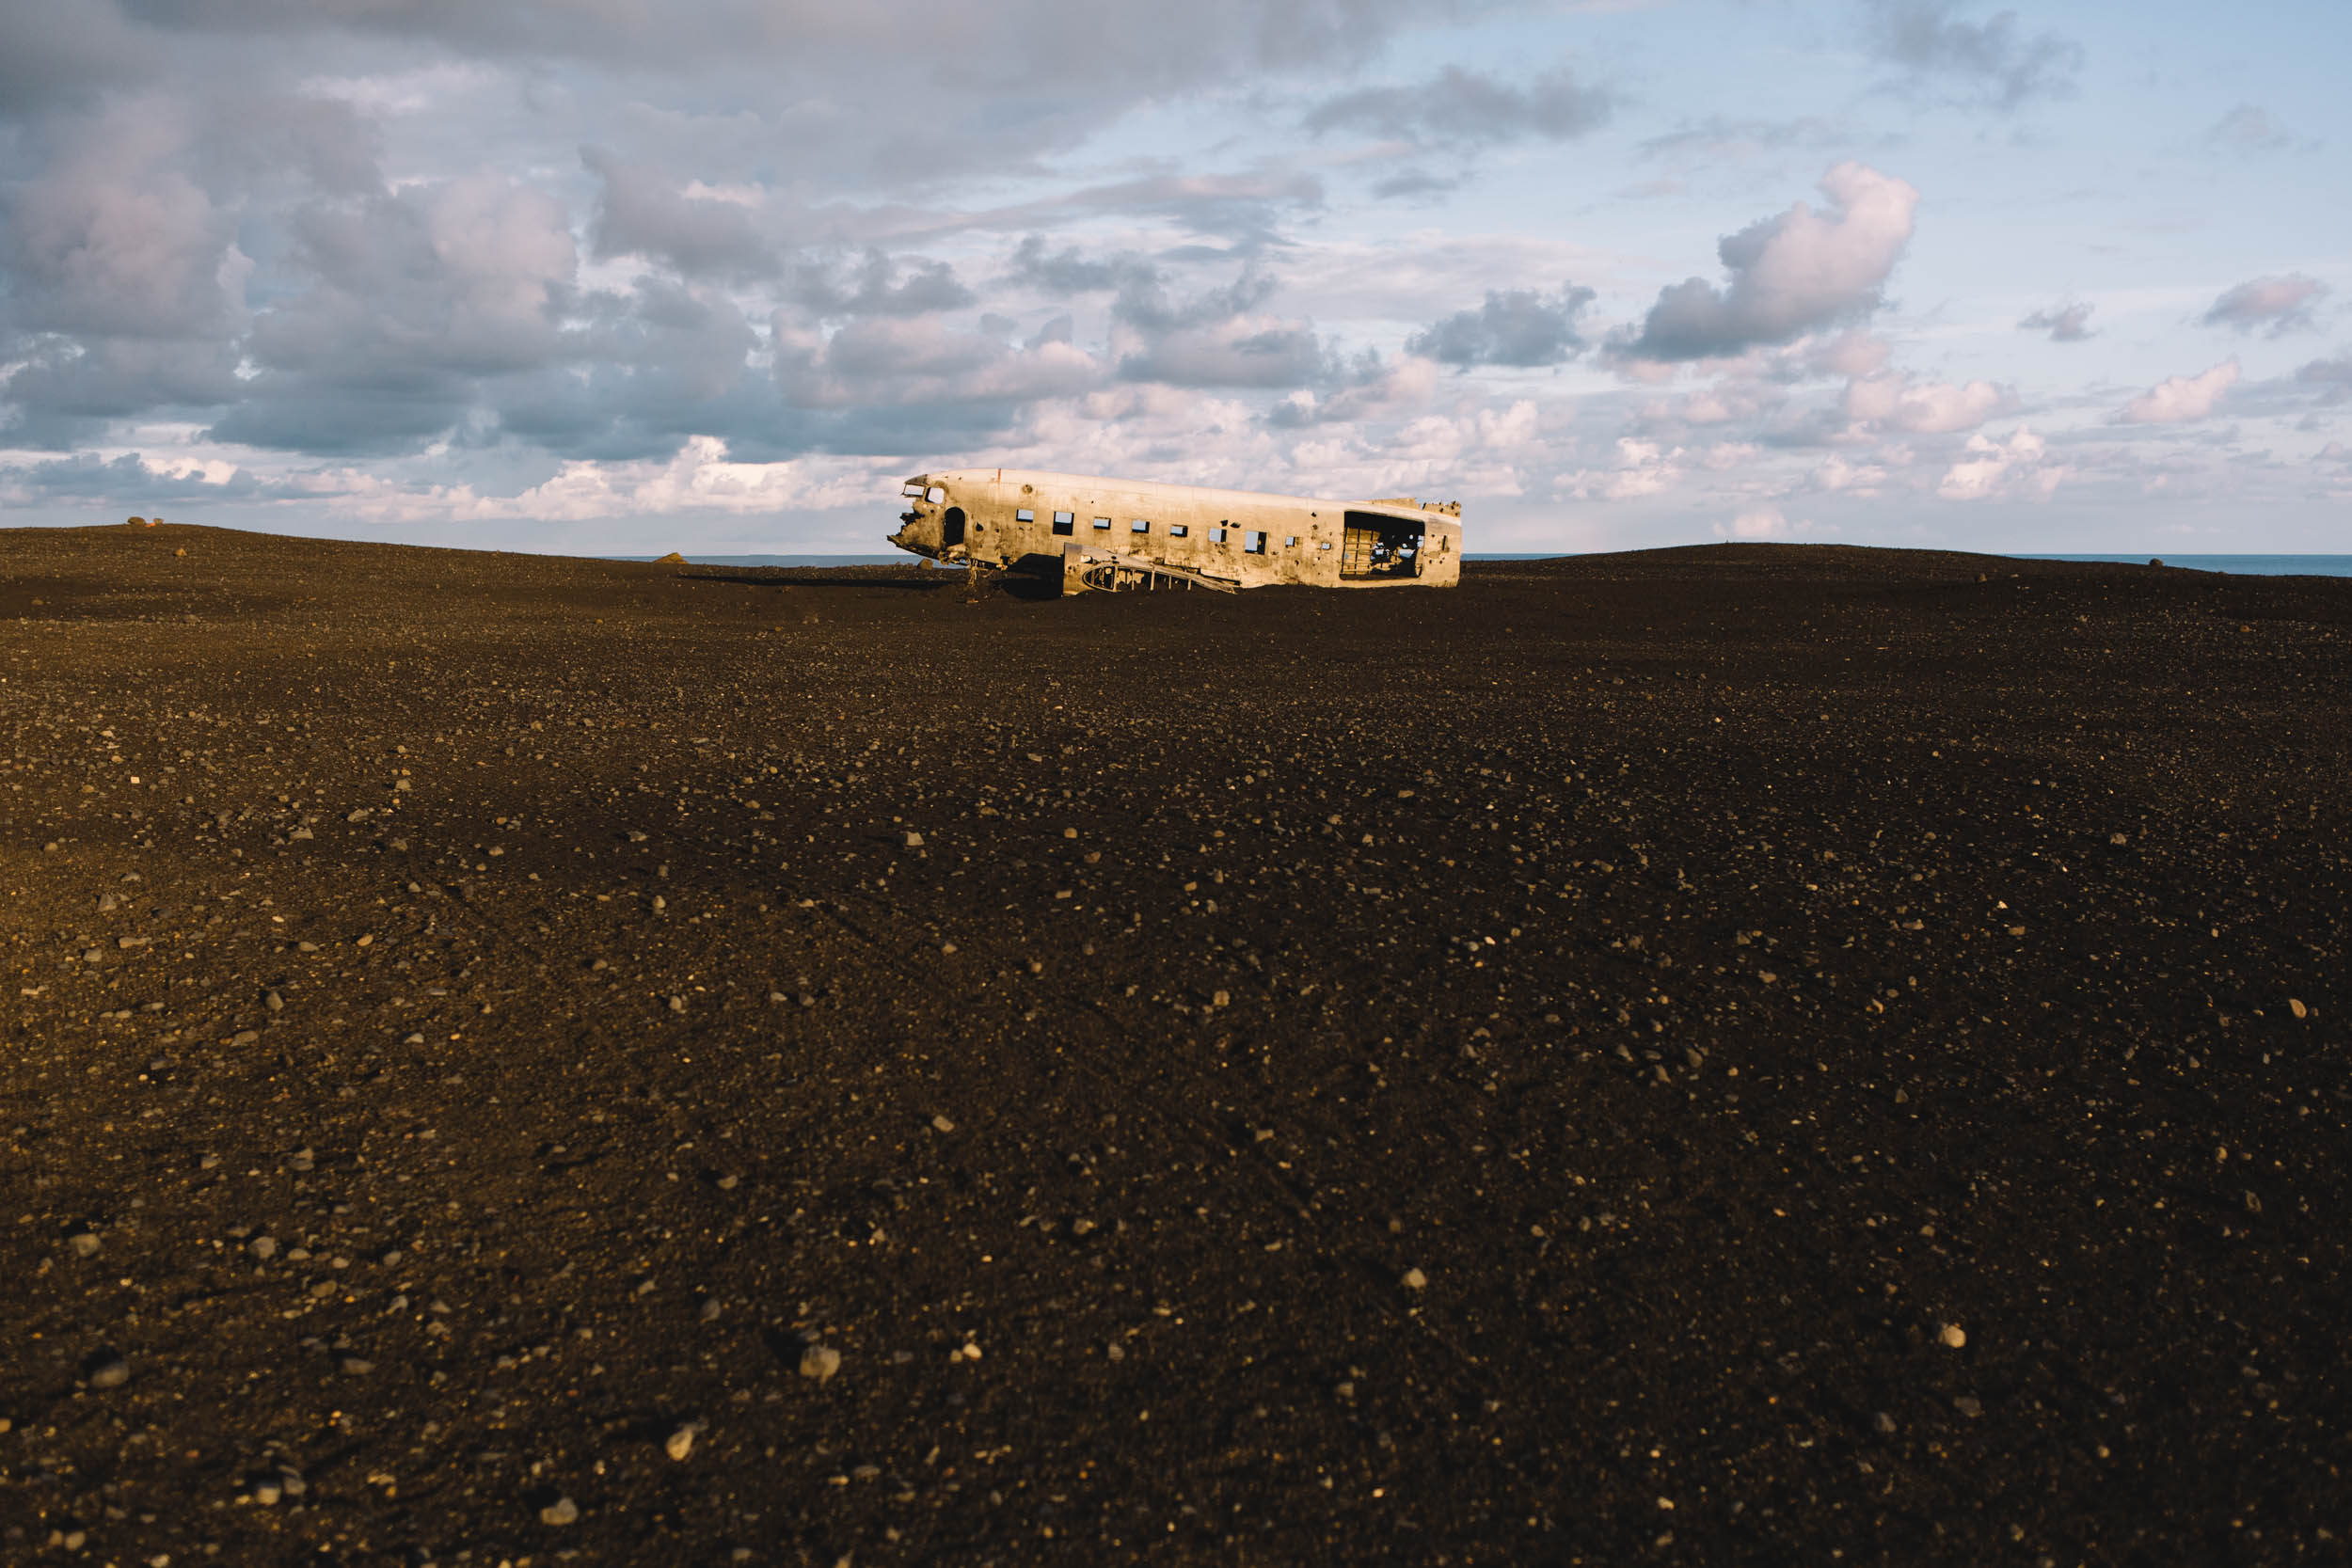 iceland-travel-camping-ring-road-013.jpg